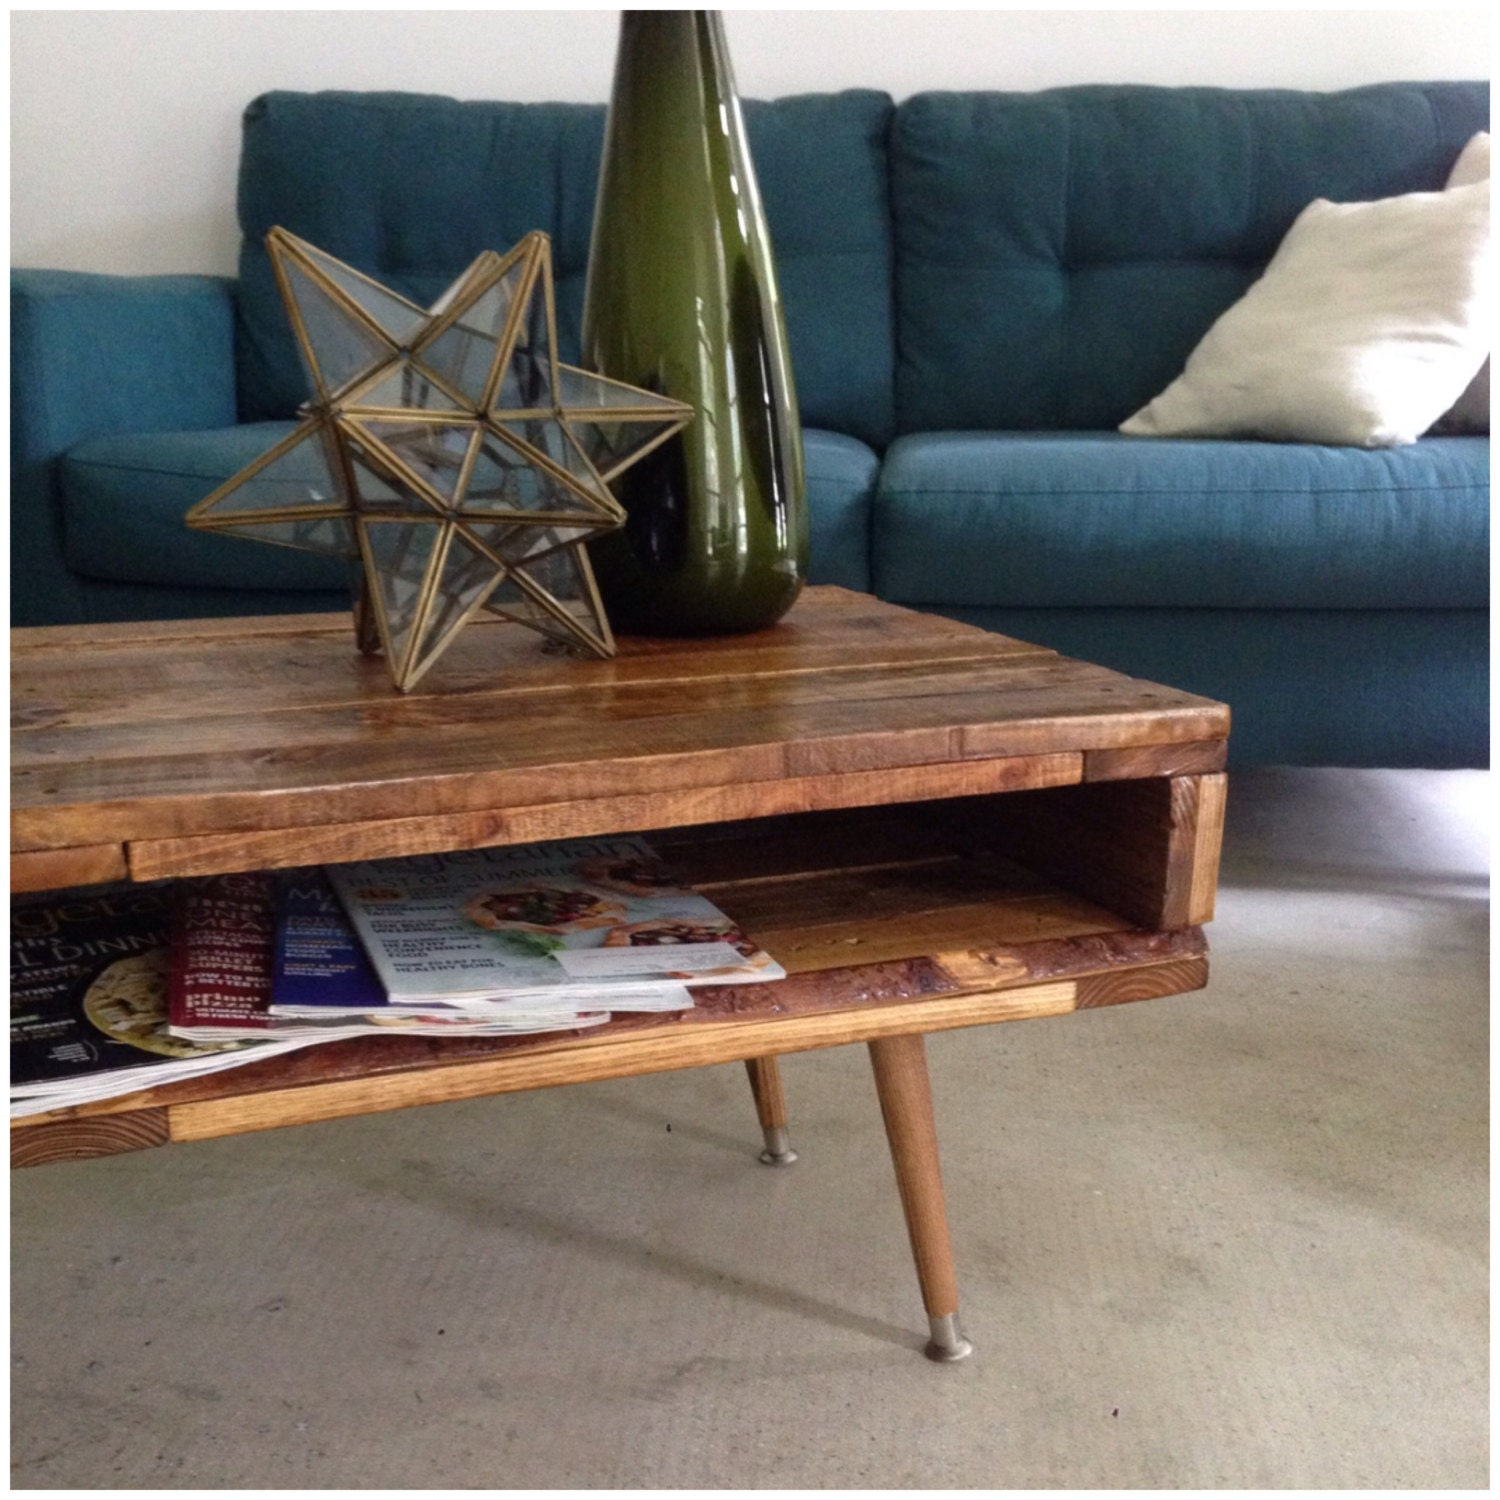 The Mid Century Mod Pallet Coffee Table